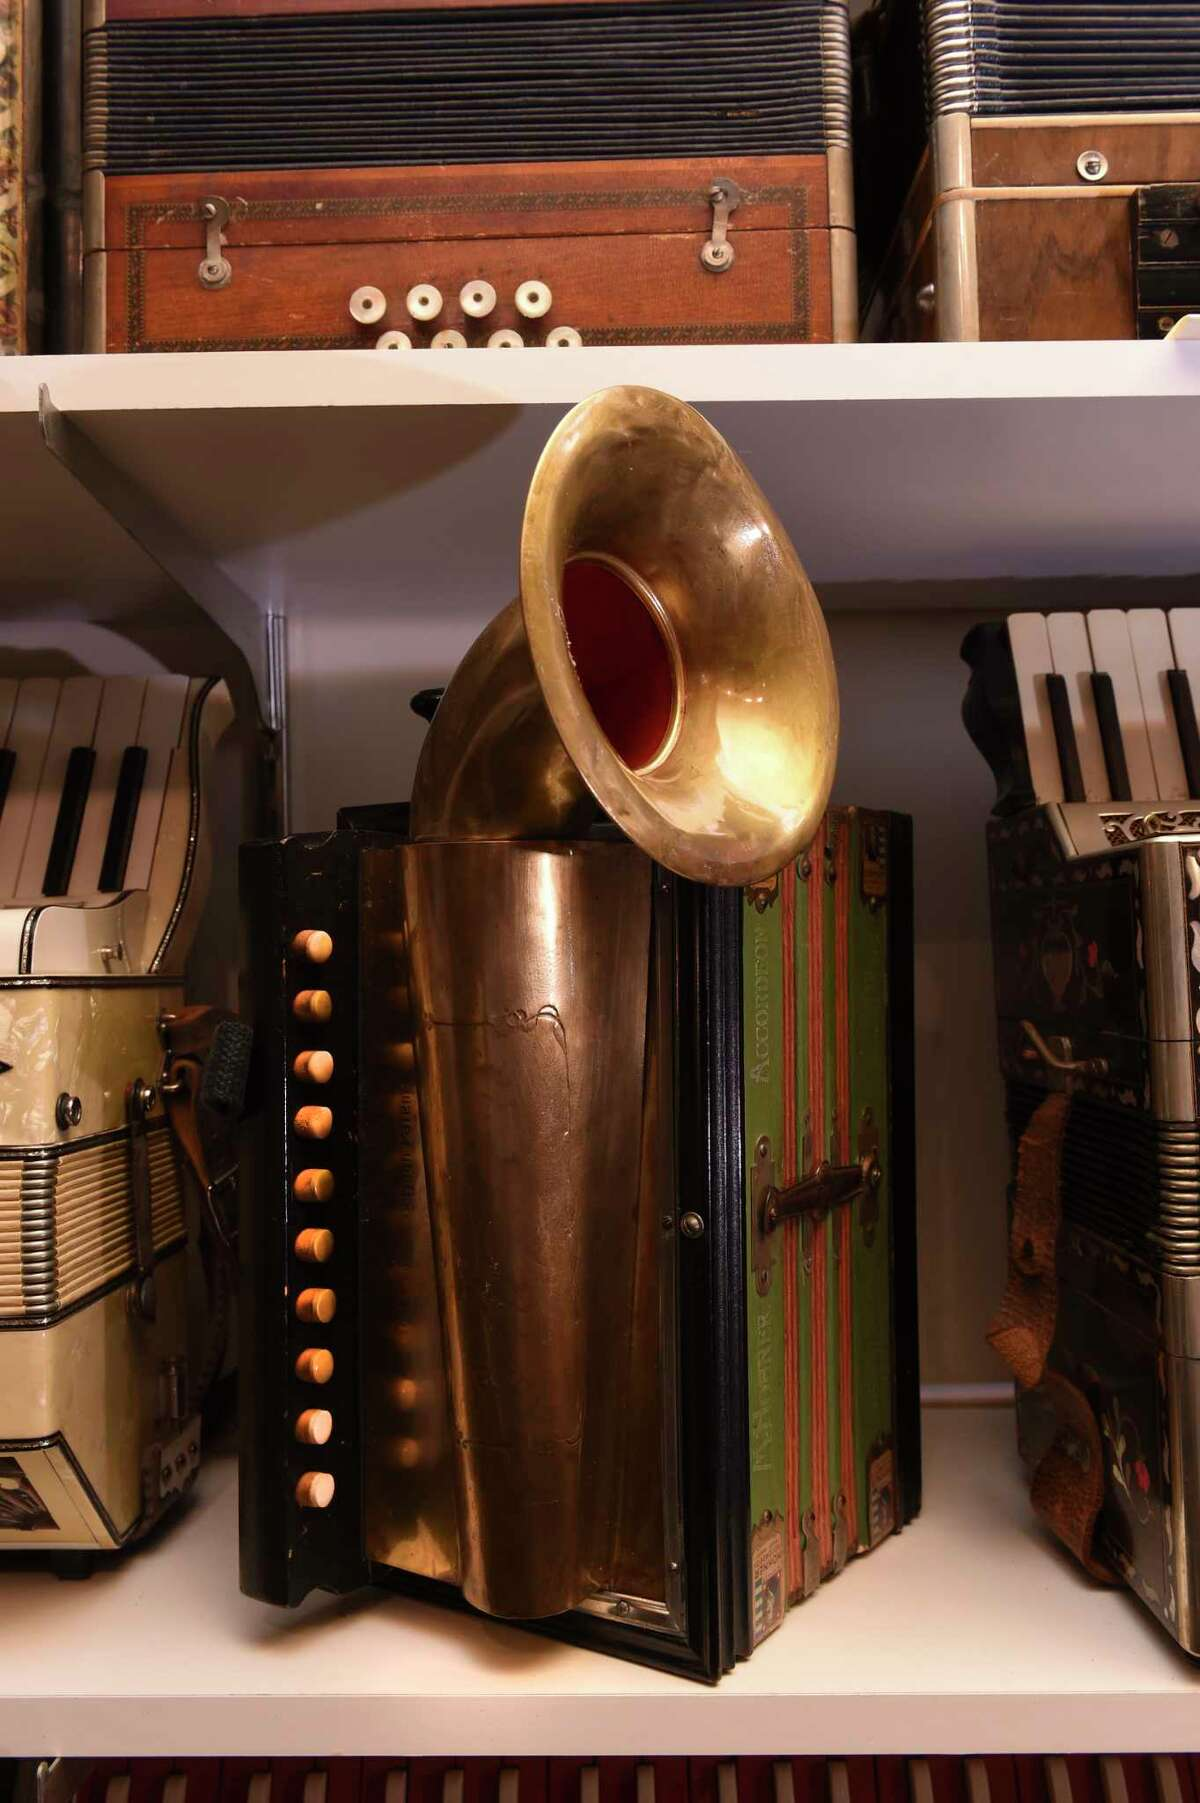 Paul Ramunni transformed his two car garage into a room packed with vintage and unusual accordions. Along the way he collected stories from the former owners.